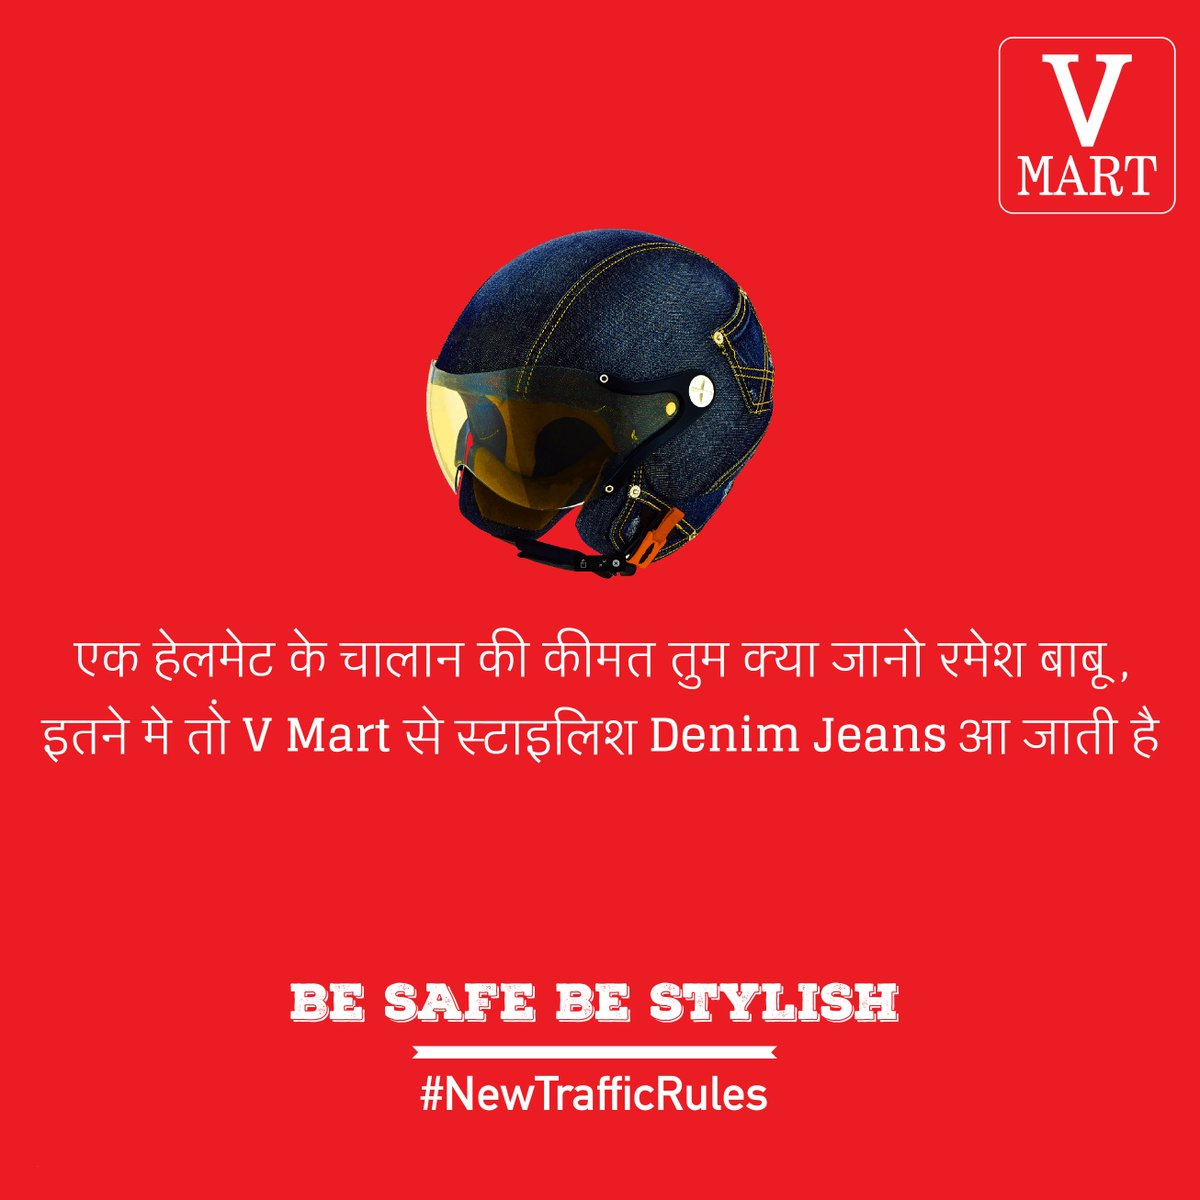 BE SAFE BE STYLISH NewTrafficRules https t.co Pu52bxvVQi